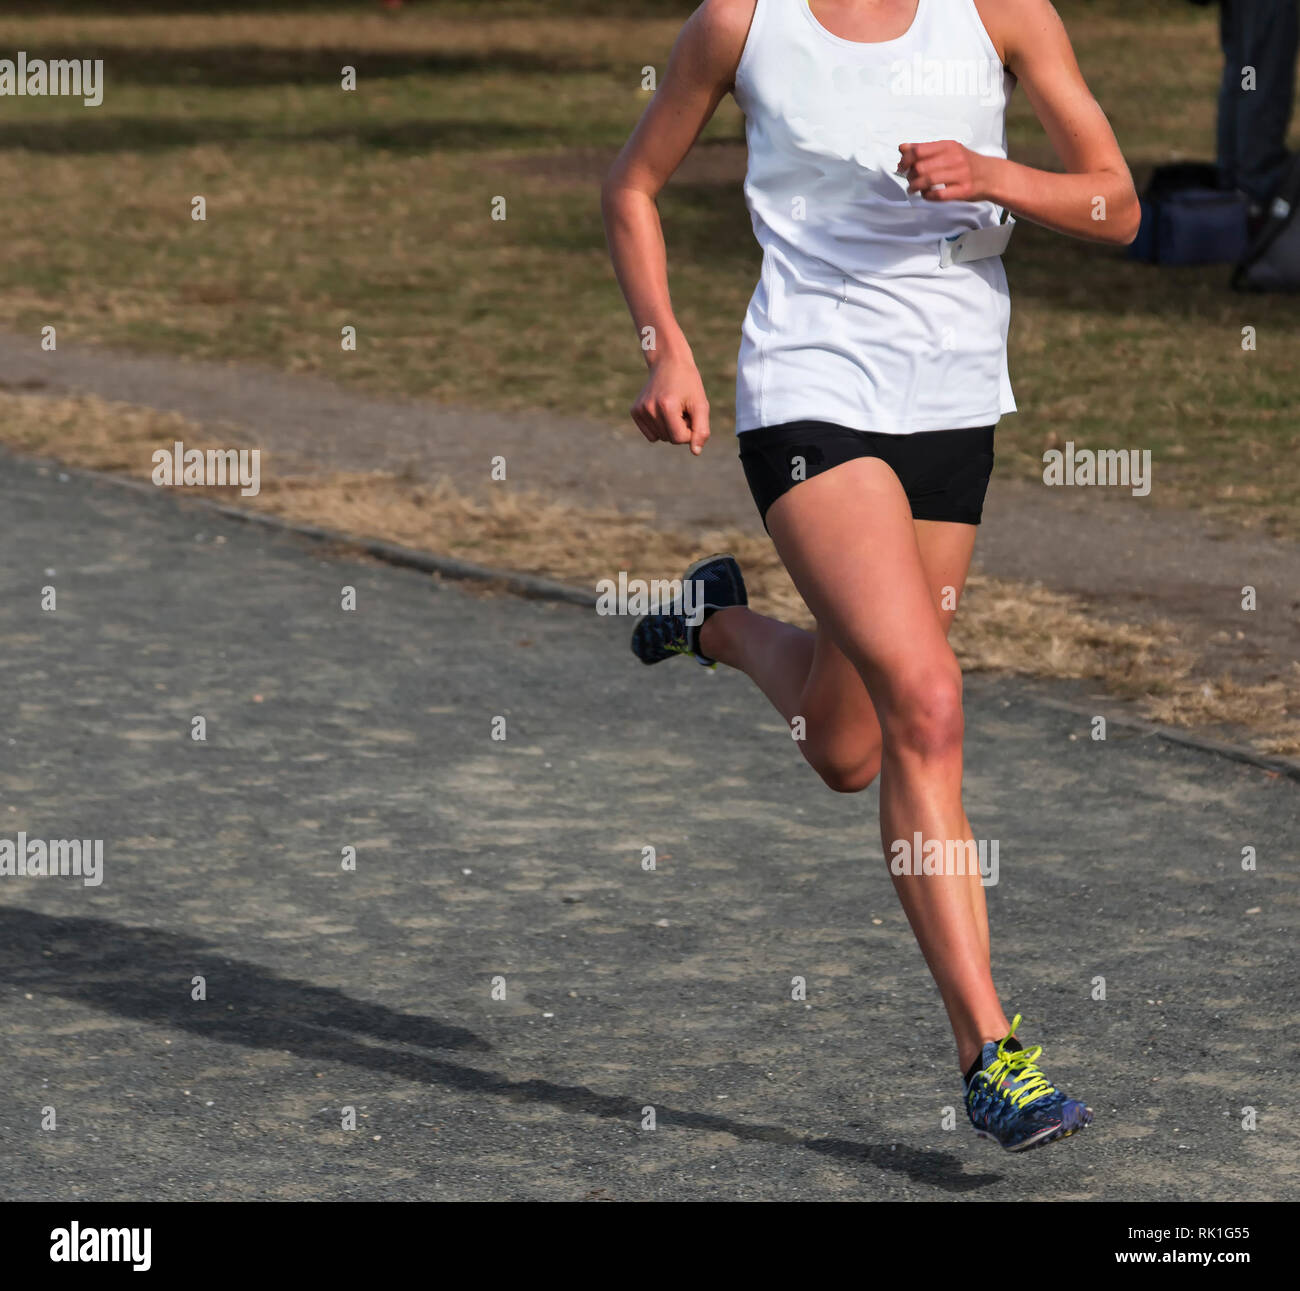 A high school female cross country runner runner racing on a gravel path wearing a white top and black pants, outsie on a sunny fall afternoon. - Stock Image